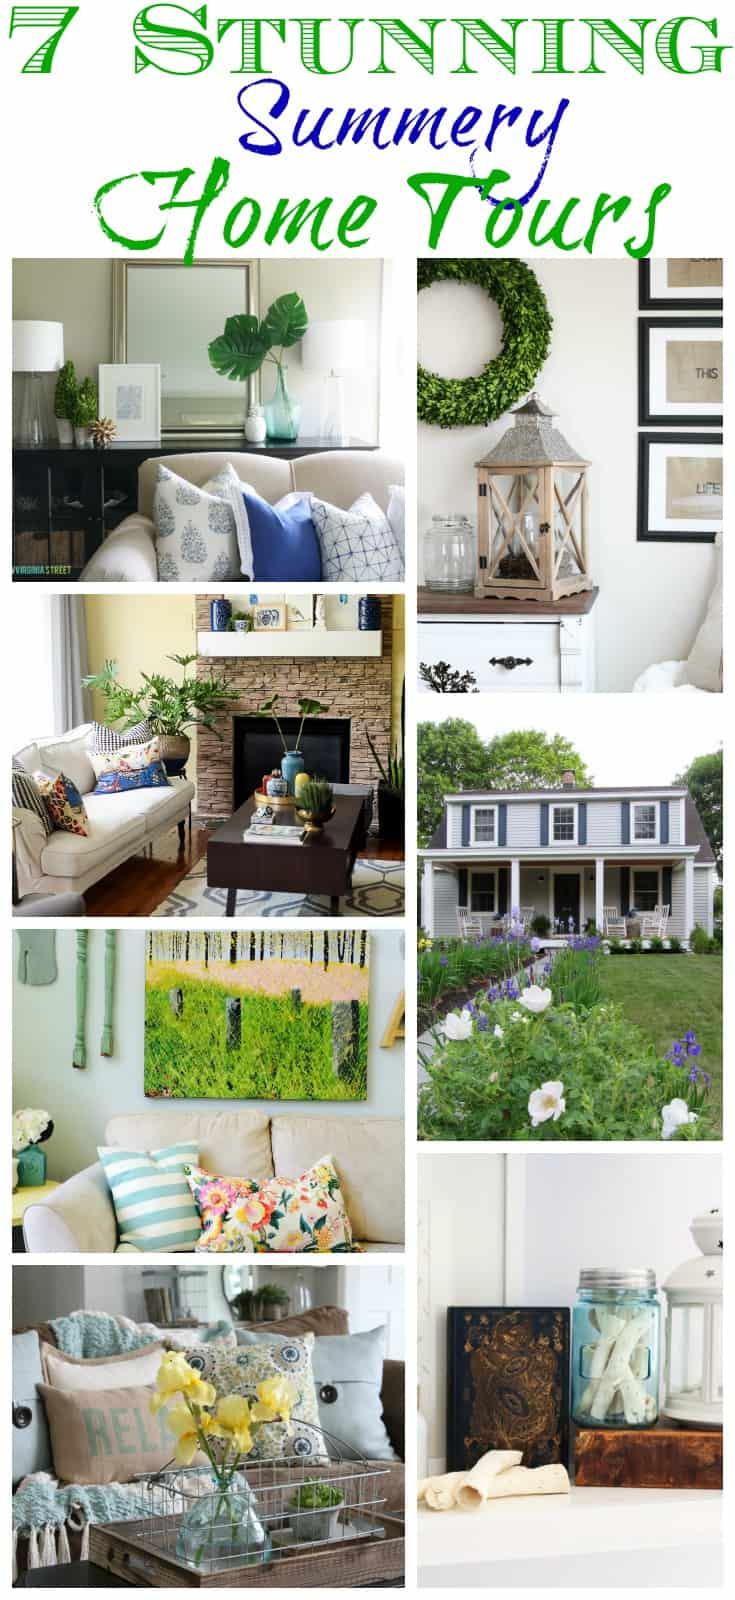 7 Stunning Summery Home Tours (1)